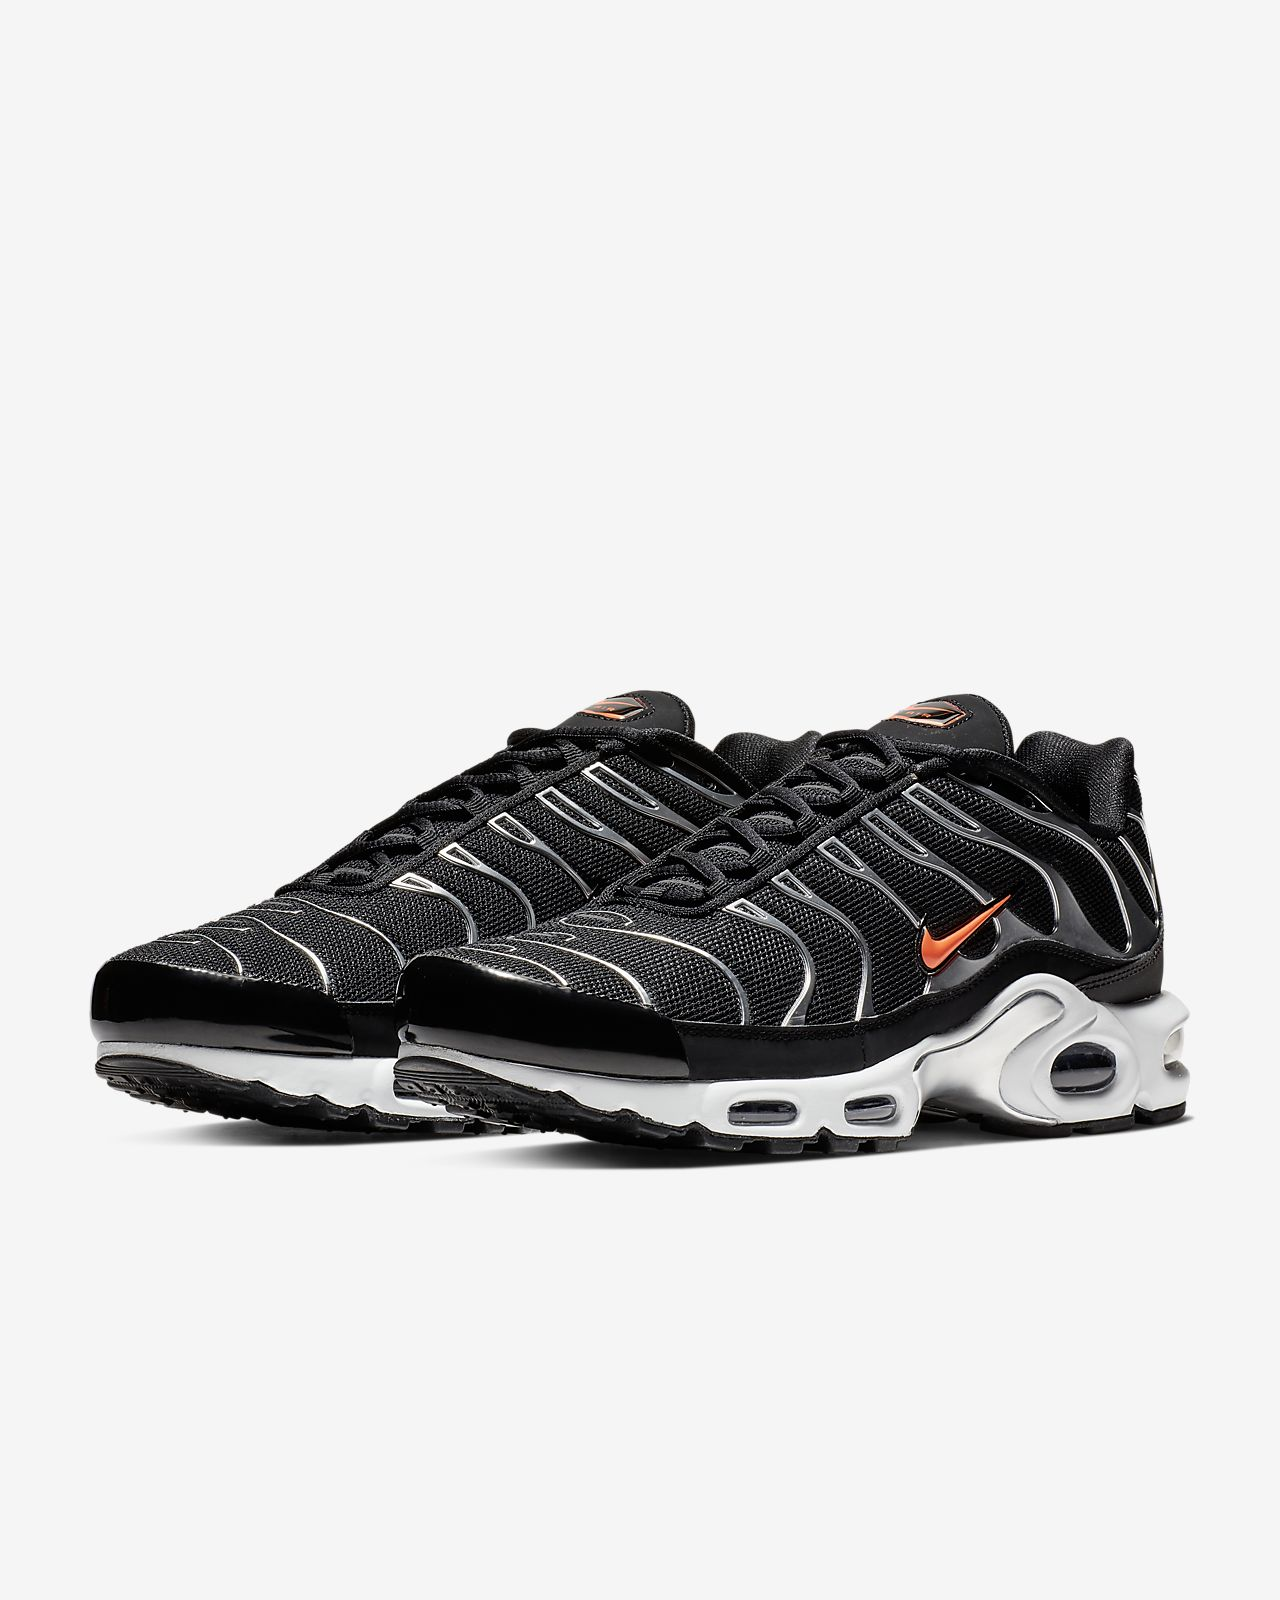 meet 77f5c f4b96 ... Nike Air Max Plus TN SE Men s Shoe